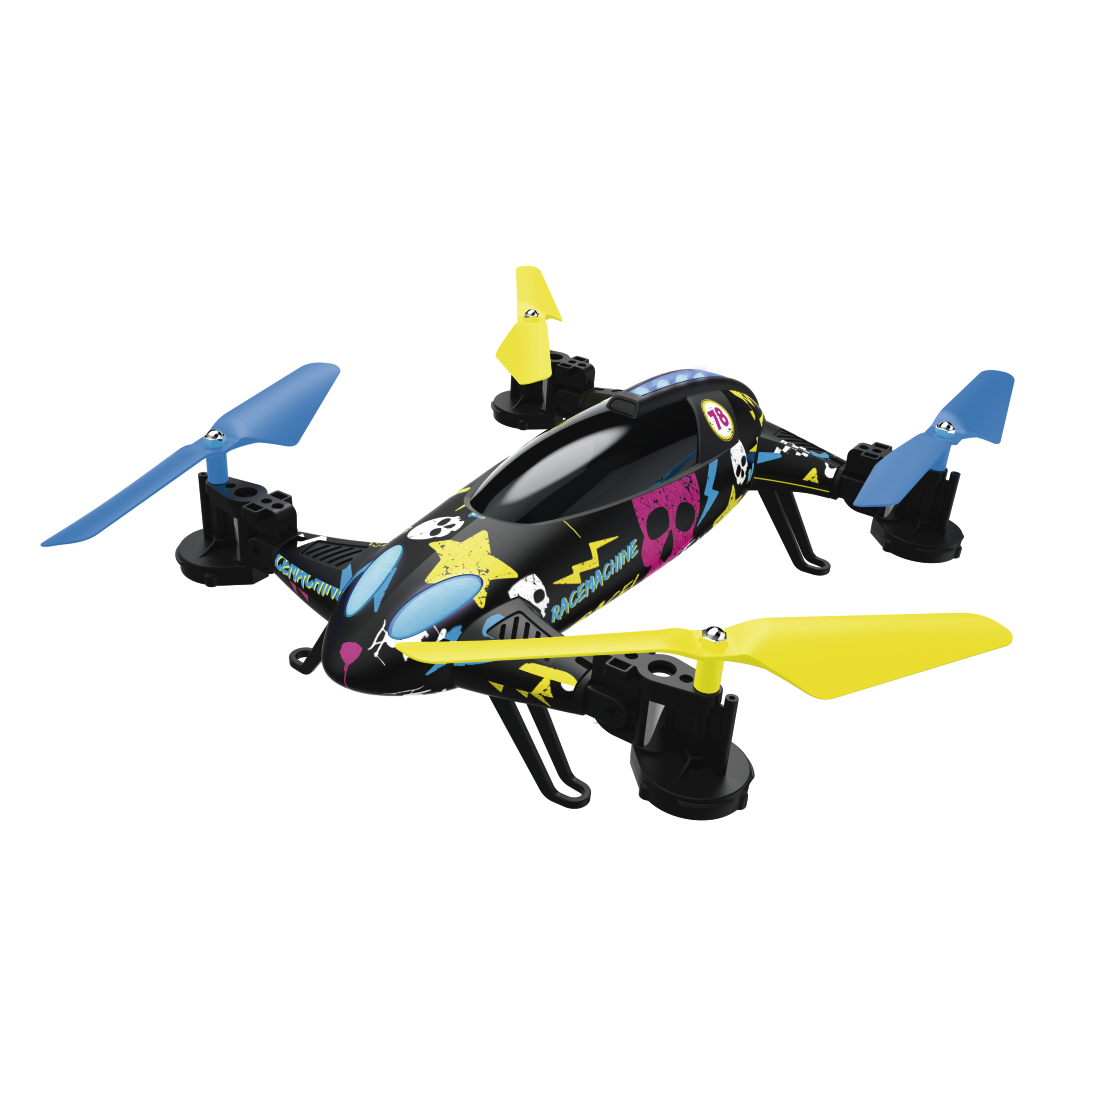 abx High-Res Image - Hama, Racemachine 2-in-1 Quadrocopter/RC Car, 6-Axis Gyro-Sensor, 720p Camera